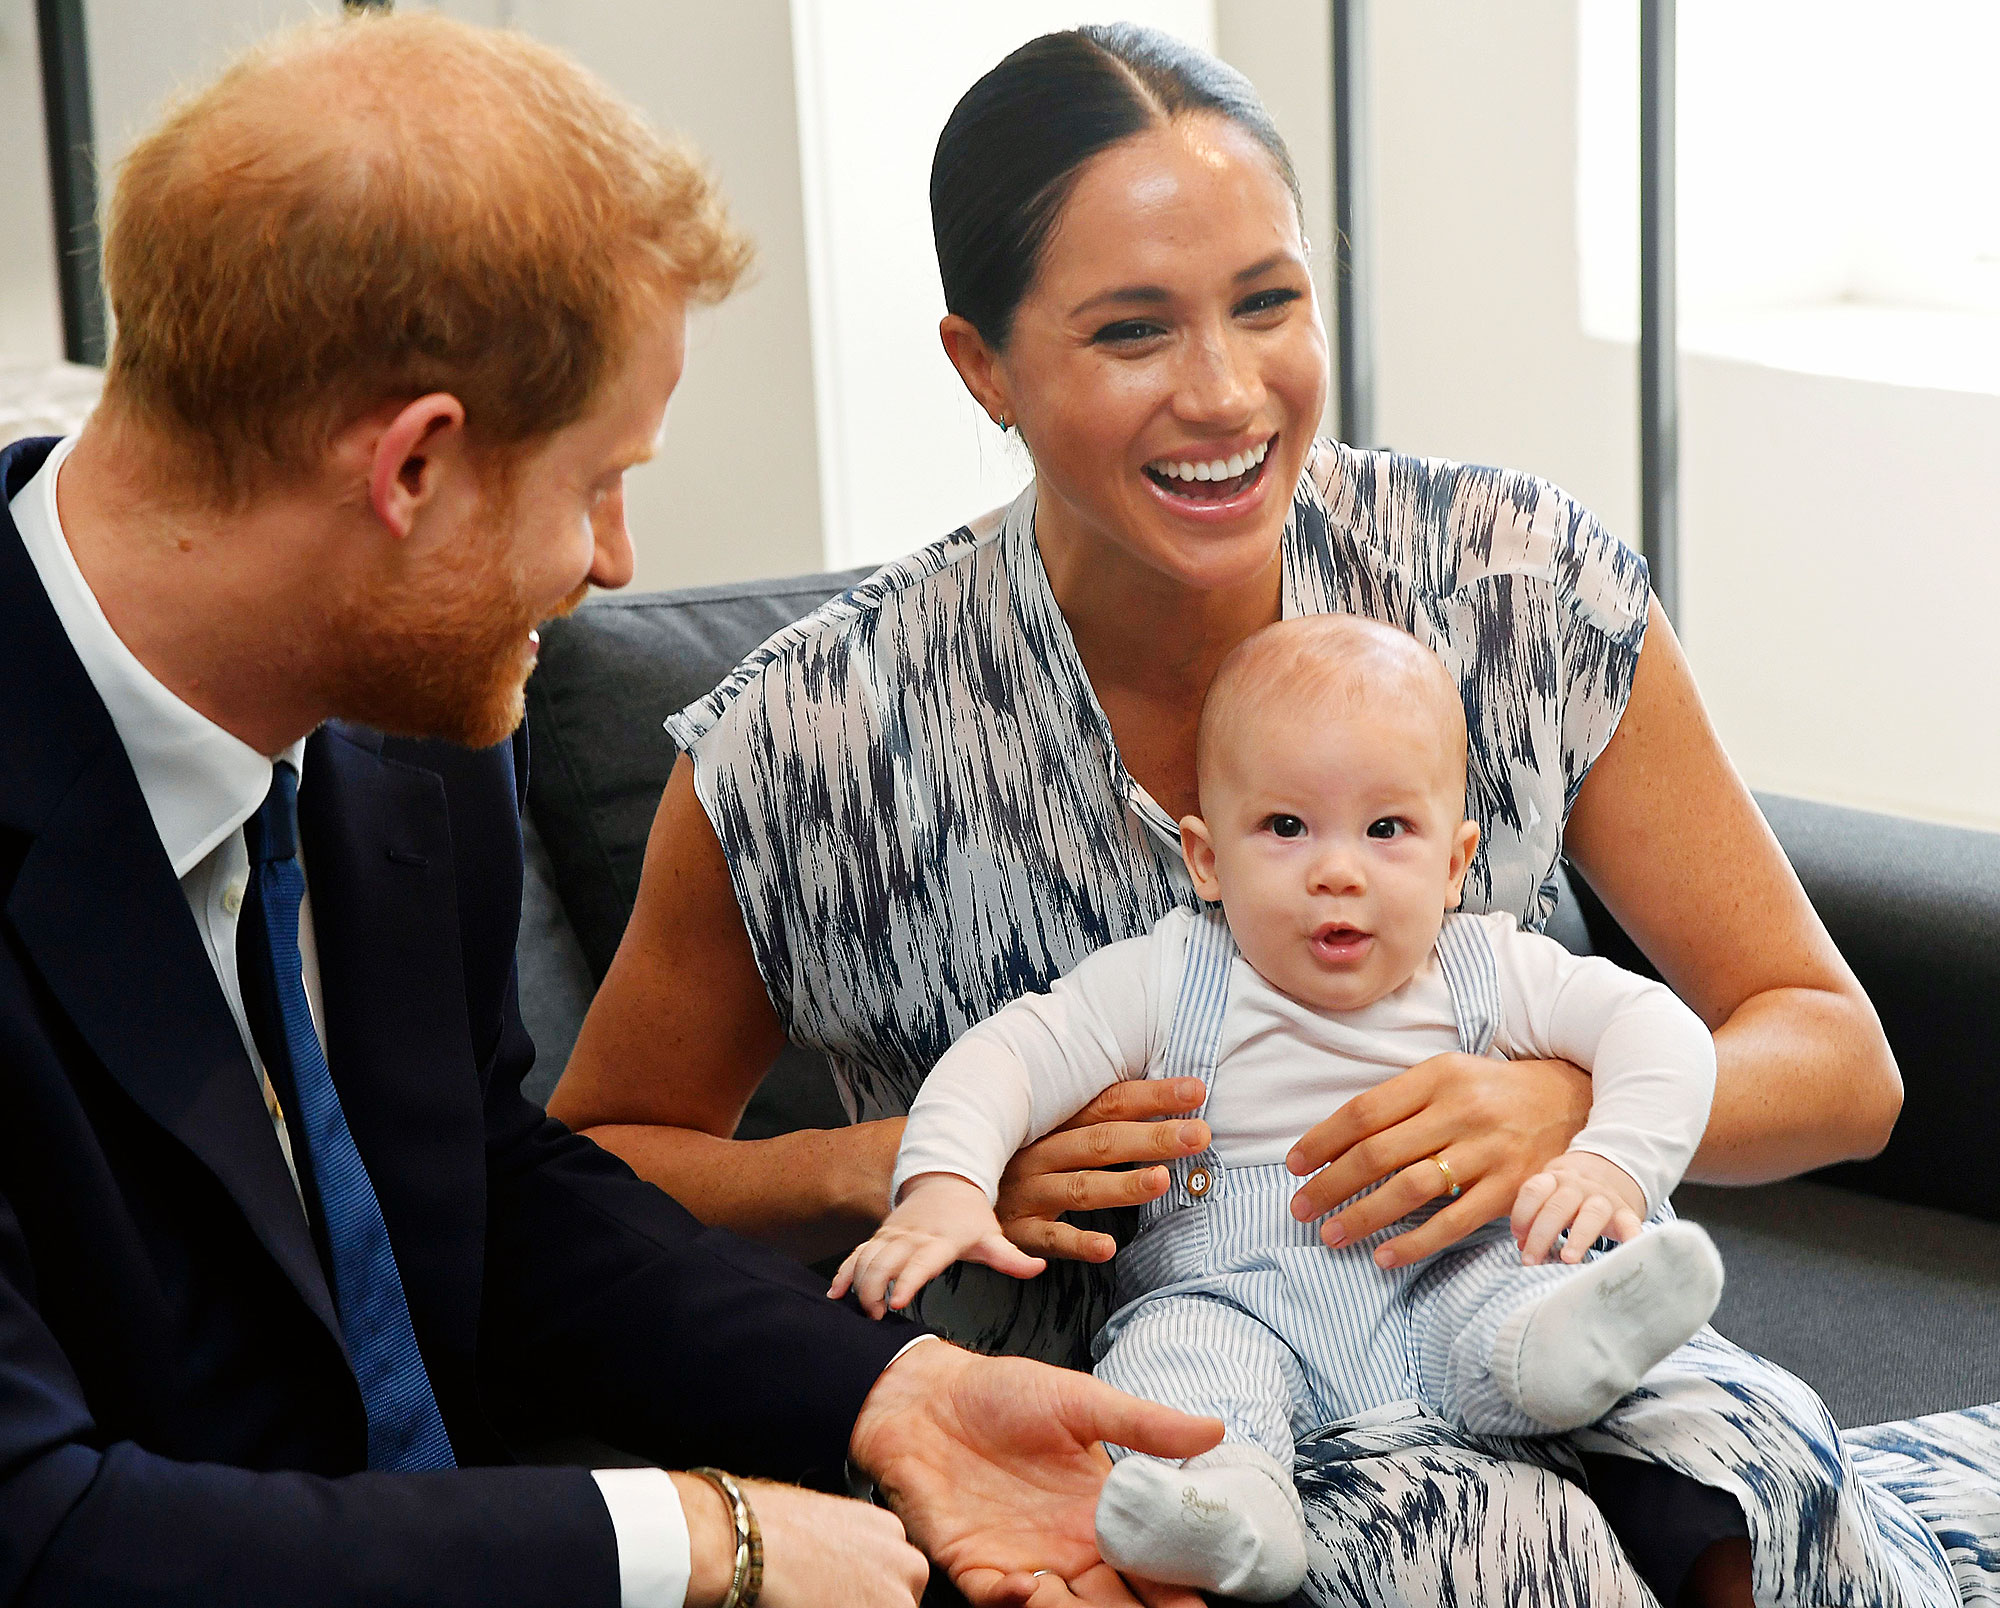 Prince Harry Meghan Markle Release New Photo Son Archie His 1st Birthday